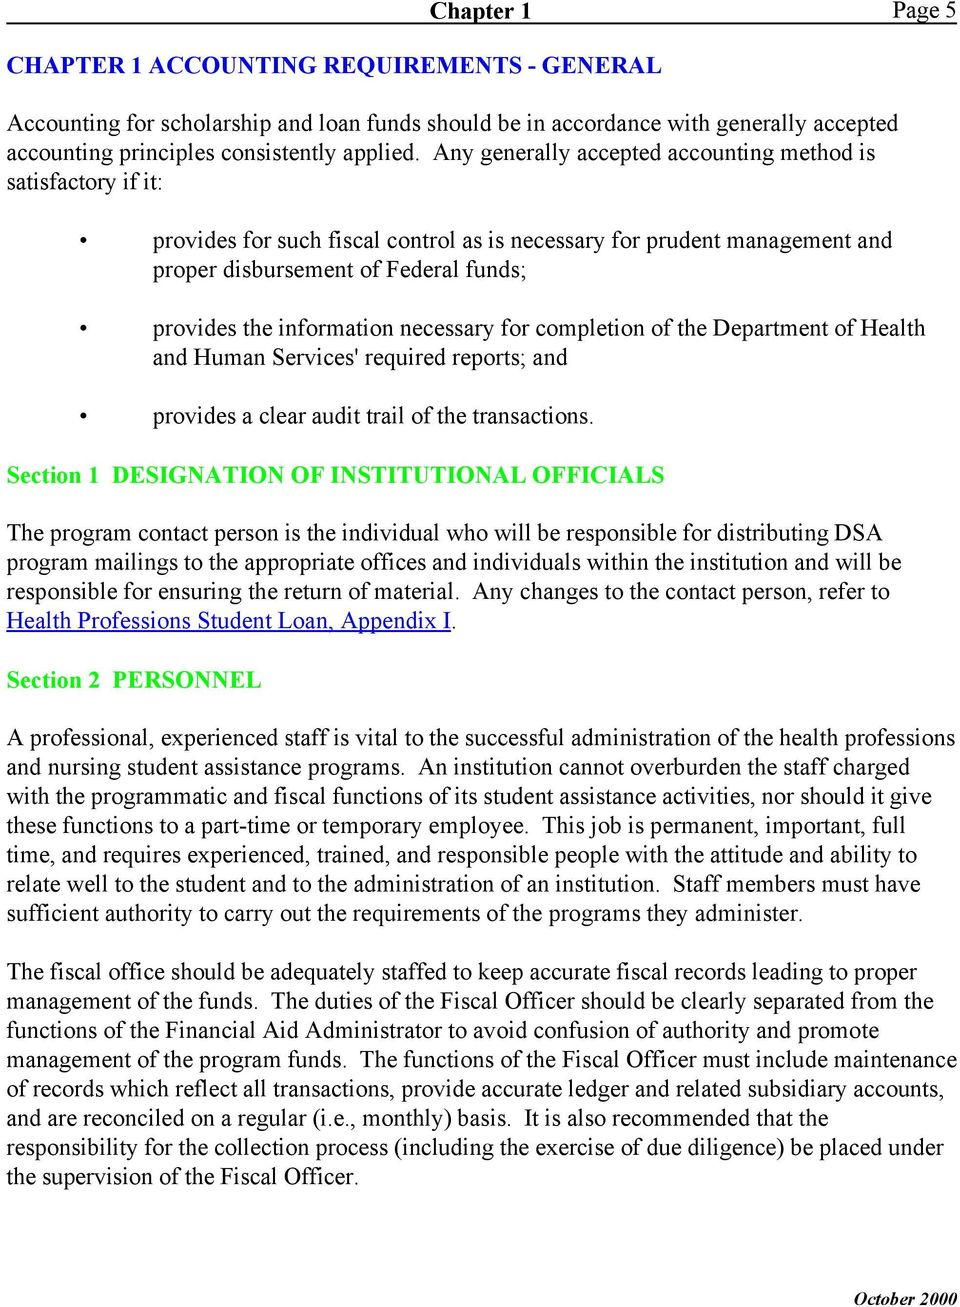 information necessary for completion of the Department of Health and Human Services' required reports; and provides a clear audit trail of the transactions.